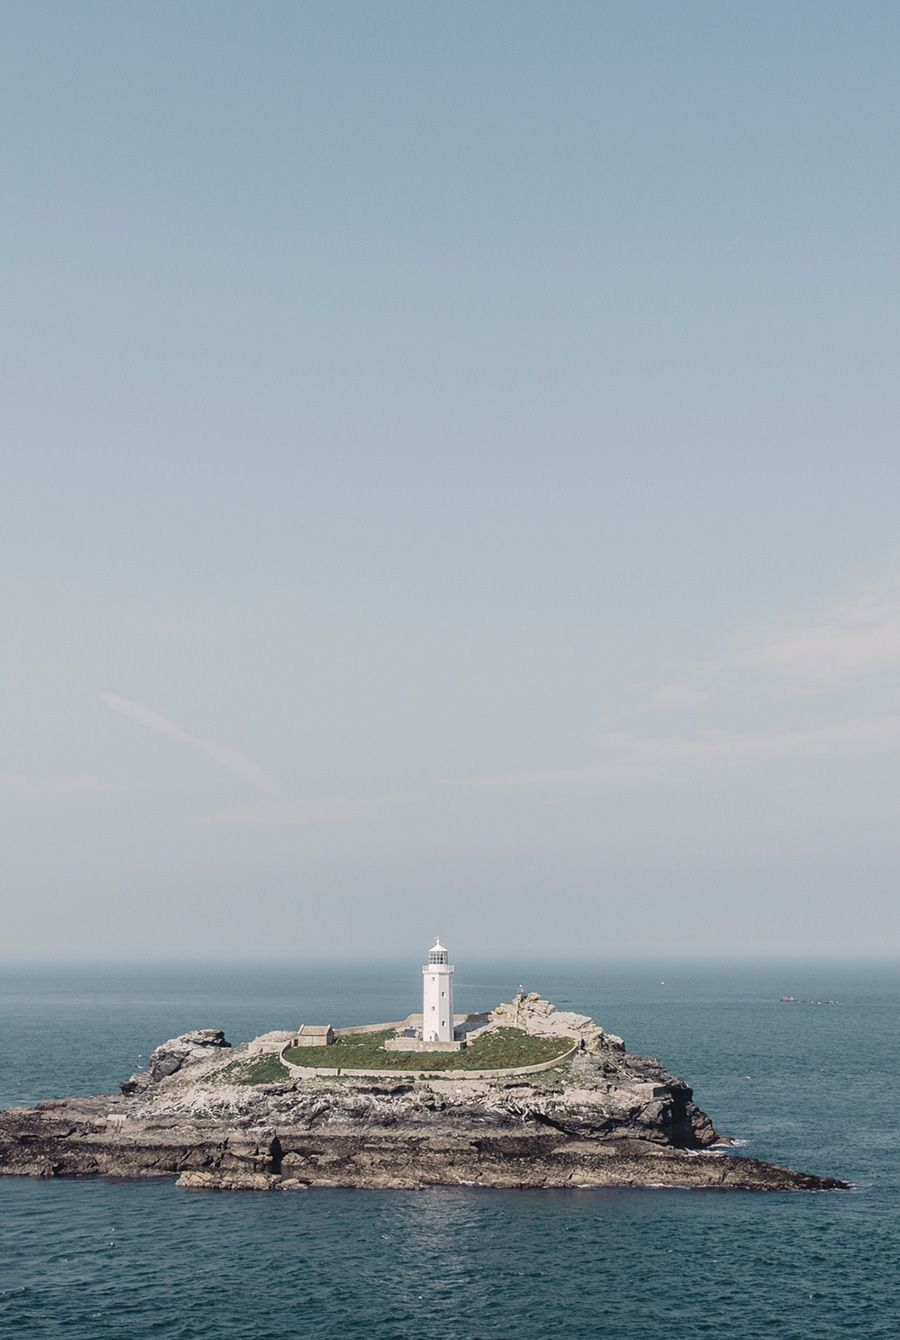 Godrevy Lighthouse in England / photo by Finn Beales